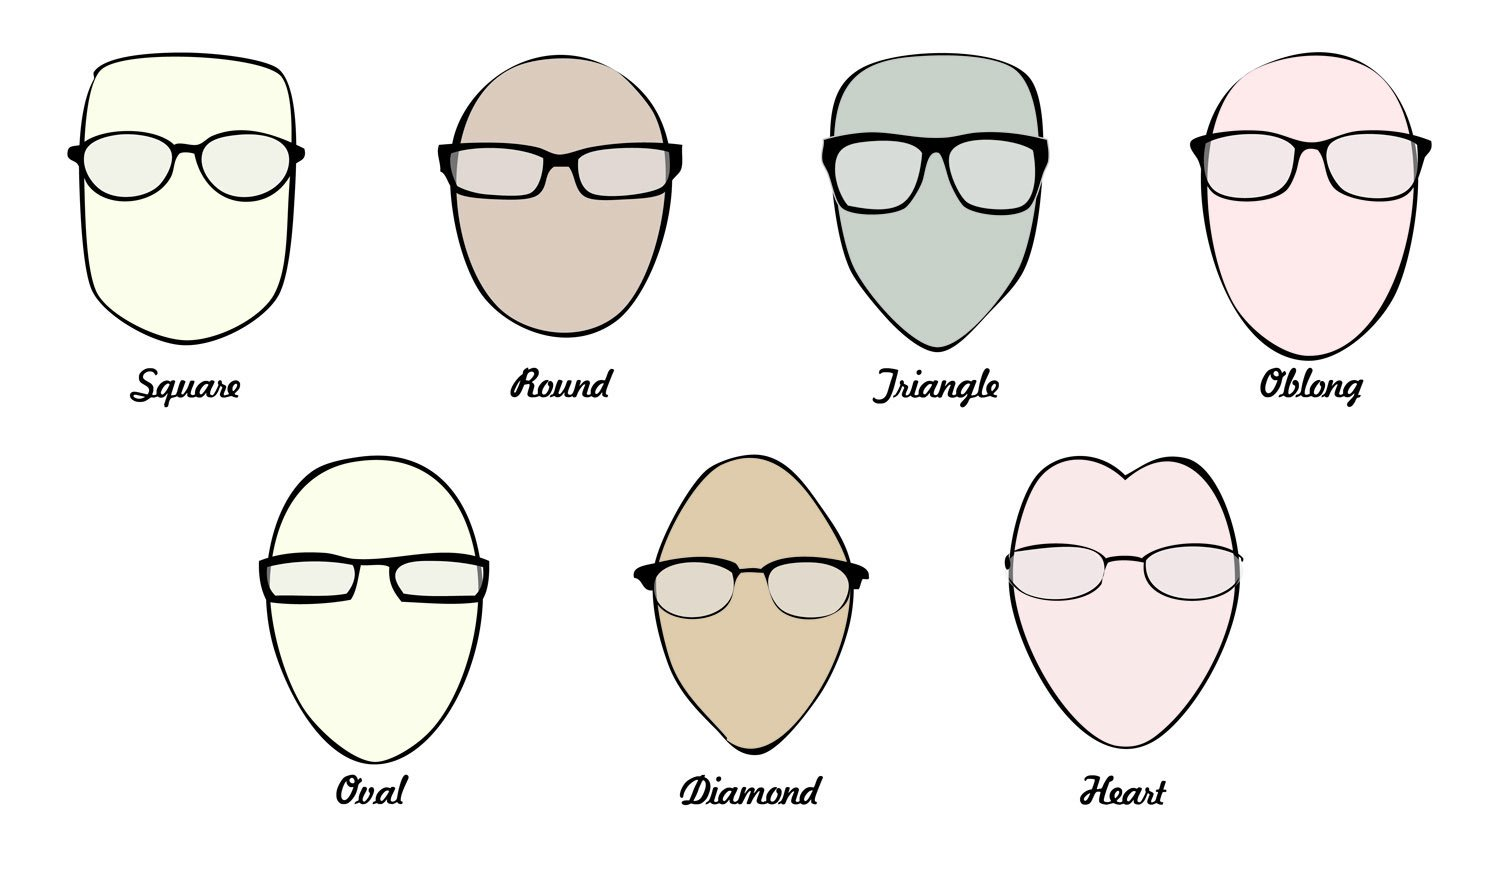 Types Of Faces And The Glass Frames That Best Fit Them - MojiDelano.Com